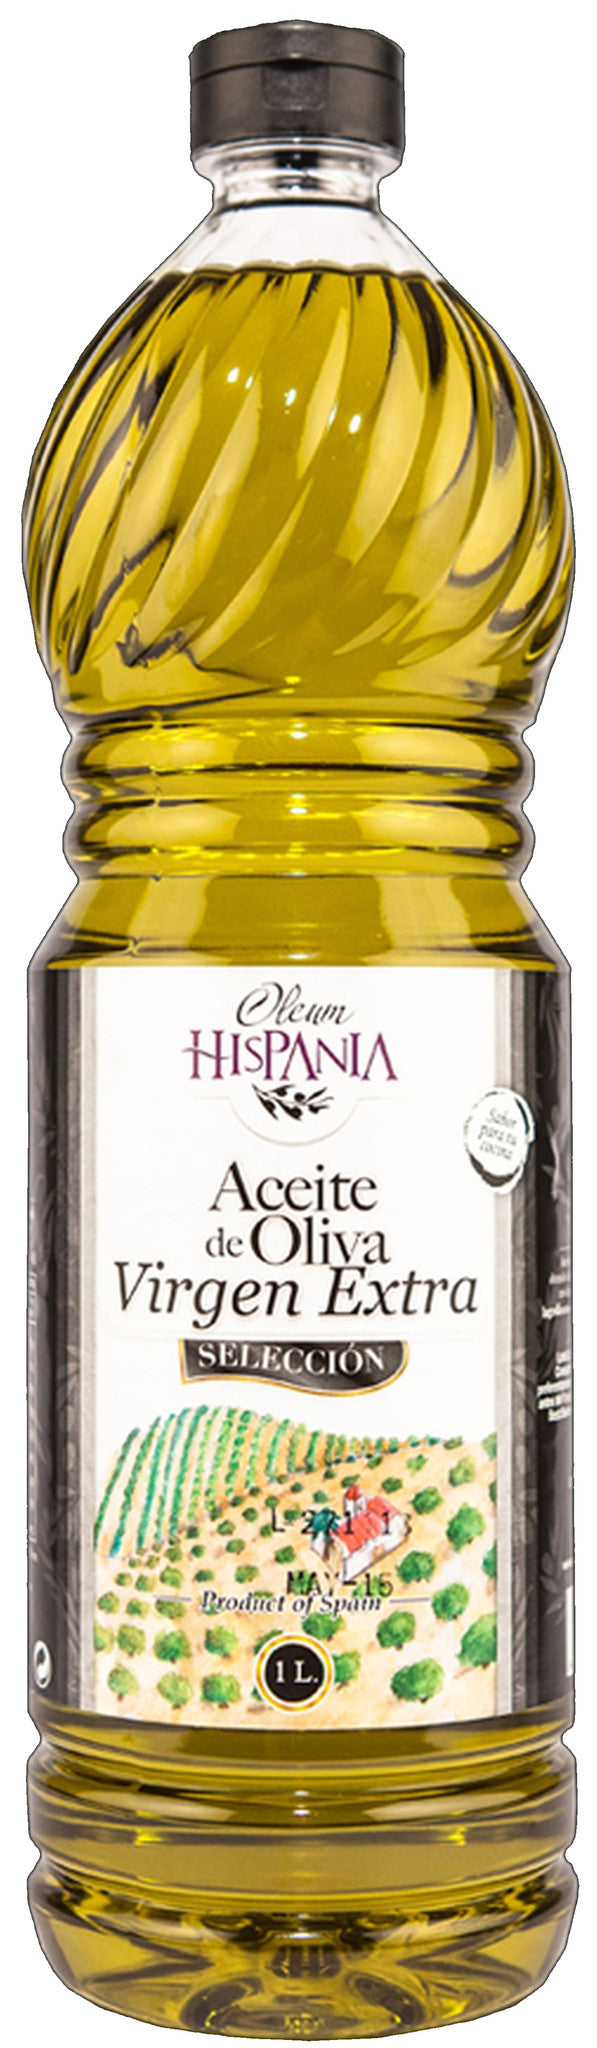 Hispania Cold Pressed Extra Virgin Olive Oil - 1L